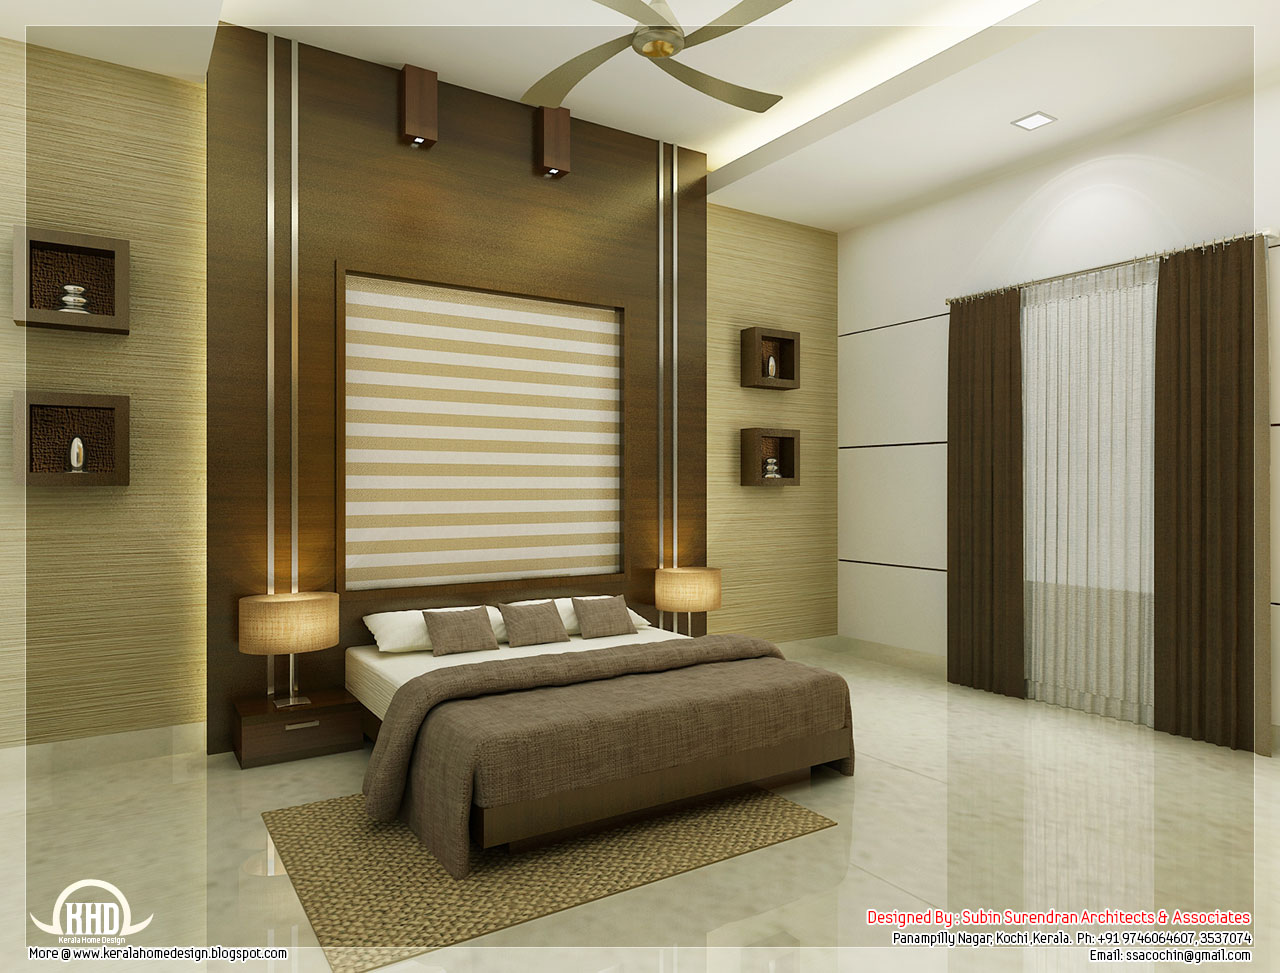 Beautiful bedroom interior designs kerala home design and floor plans Beautiful home interior design ideas